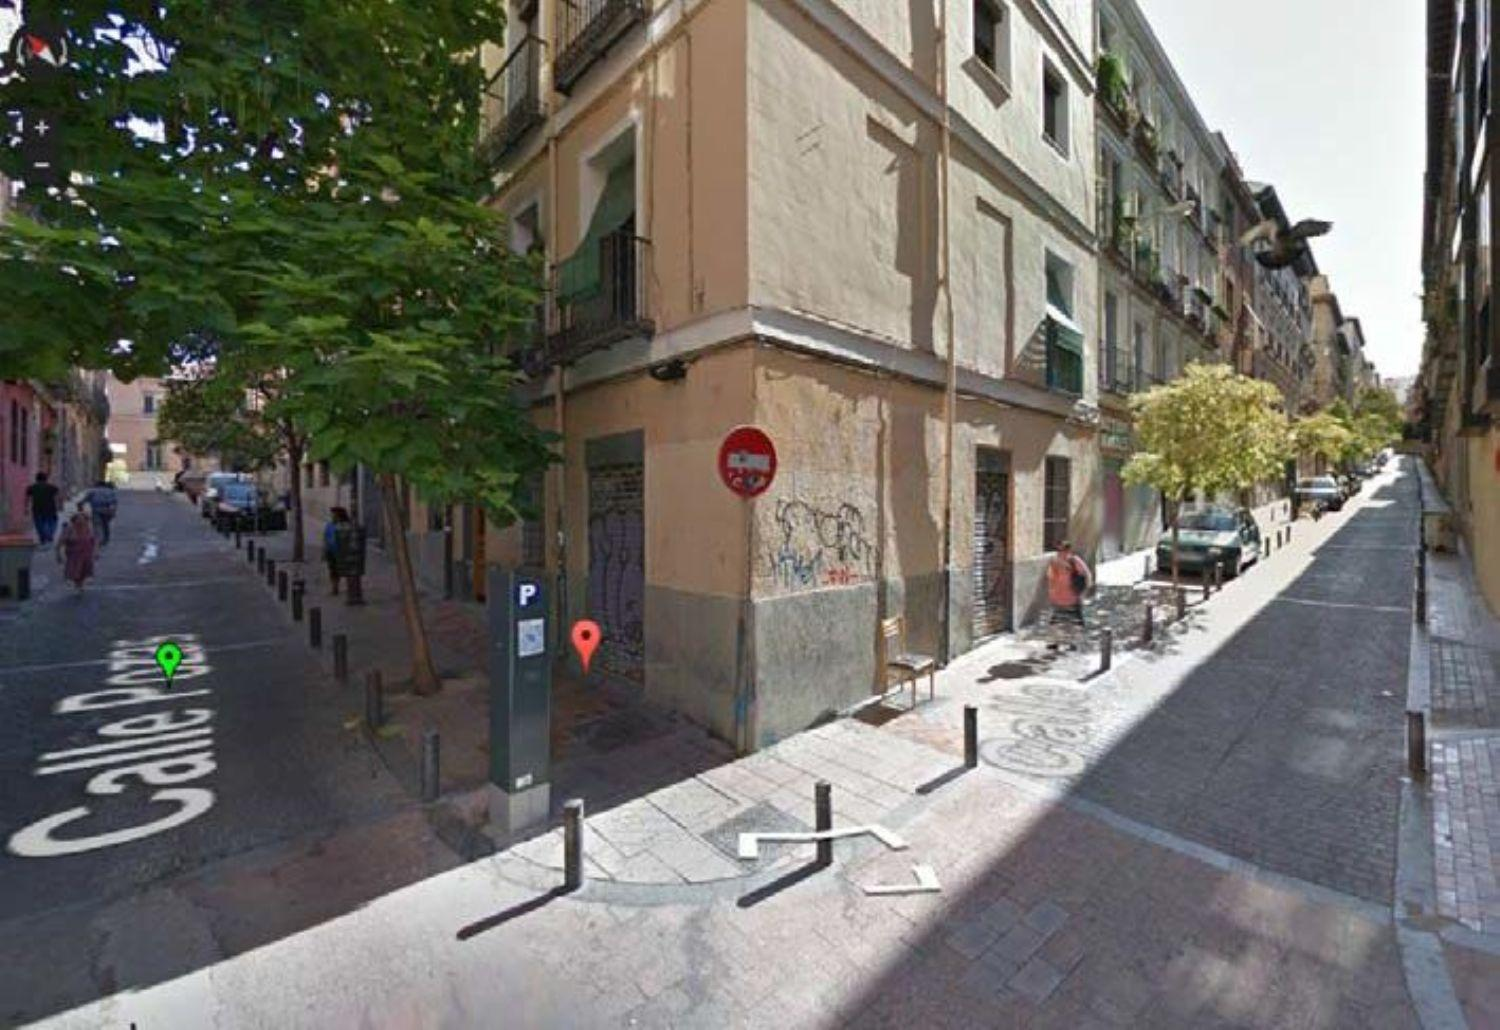 Local Comercial en Venta Universidad, Madrid